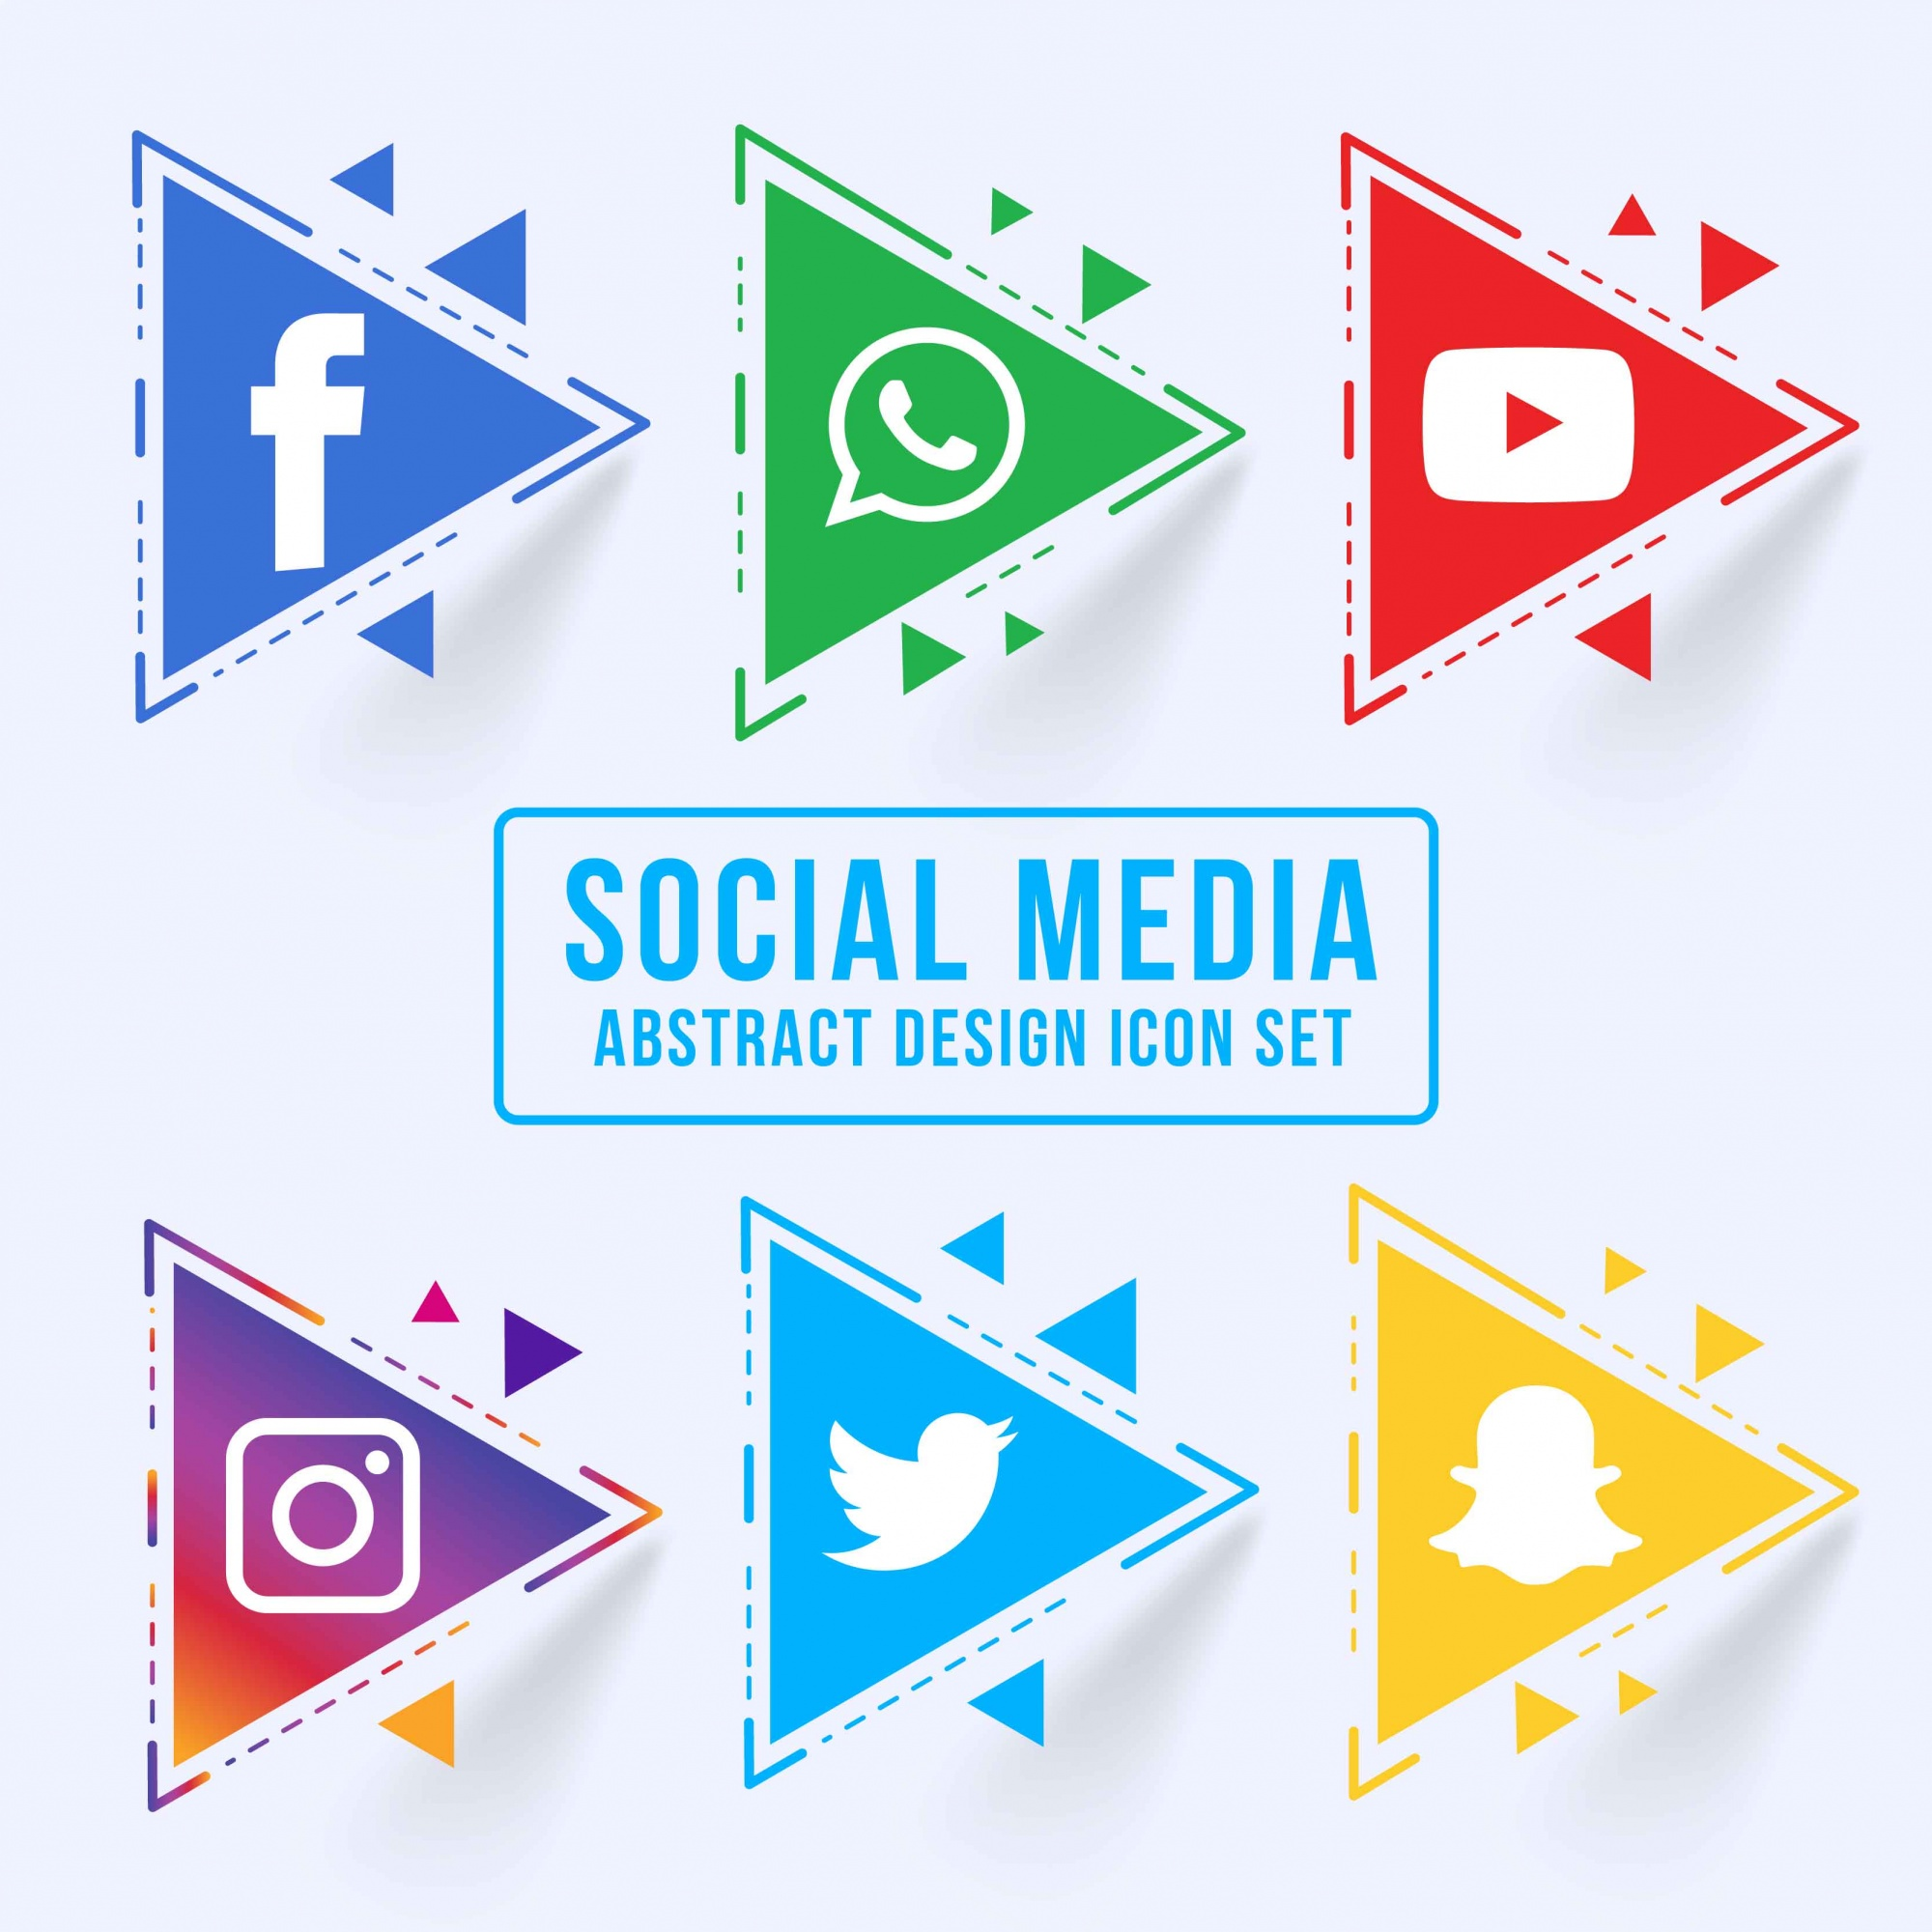 Abstract triangular social media icon set